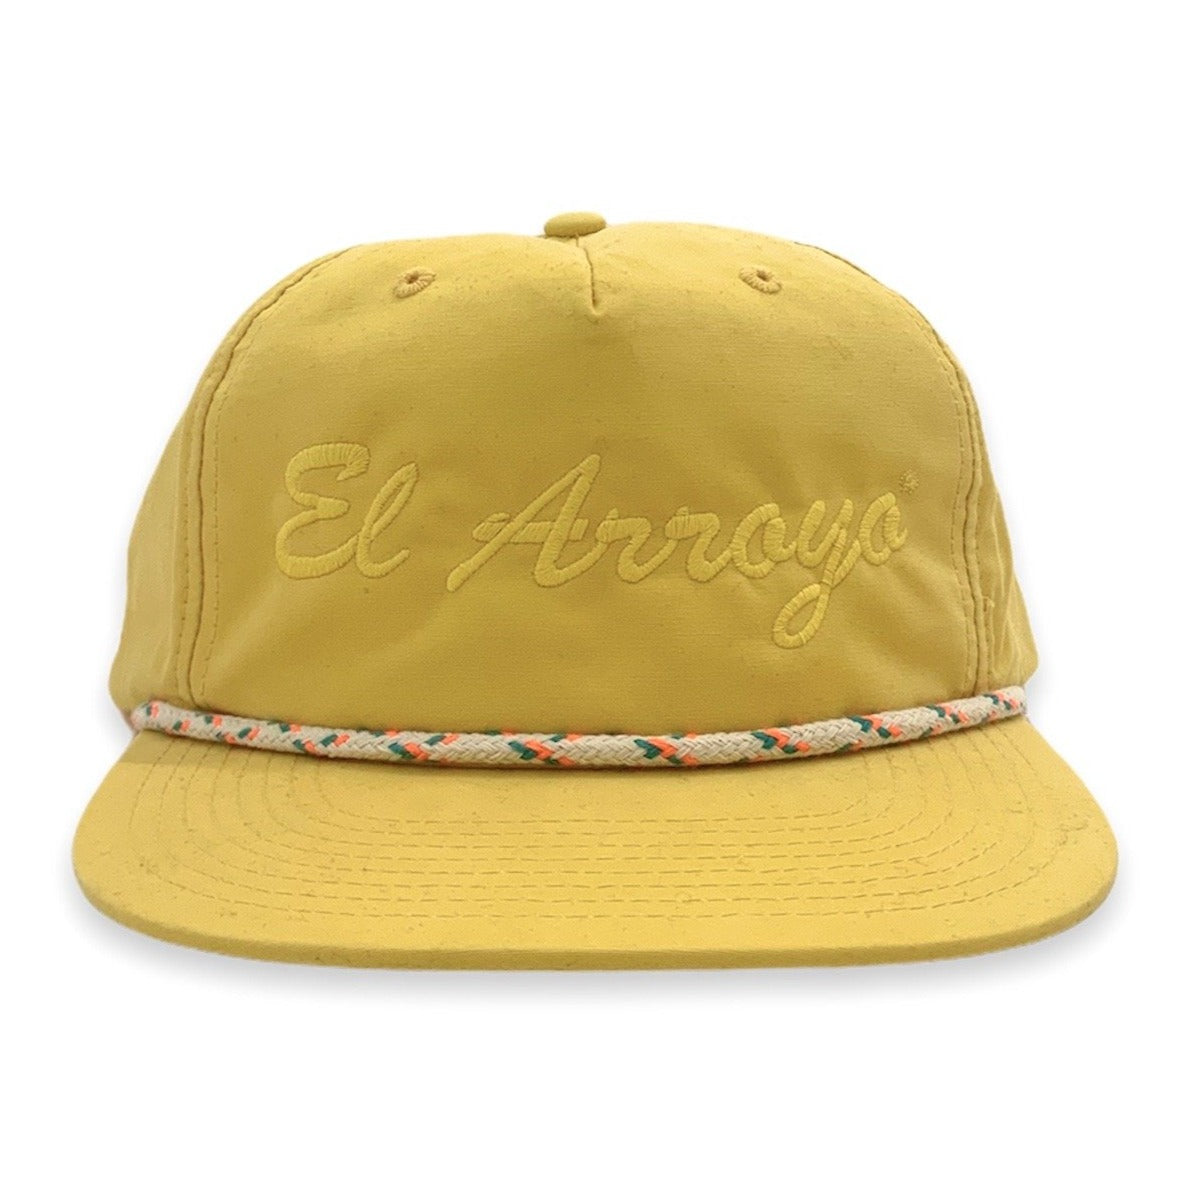 Yellow El Arroyo Hat